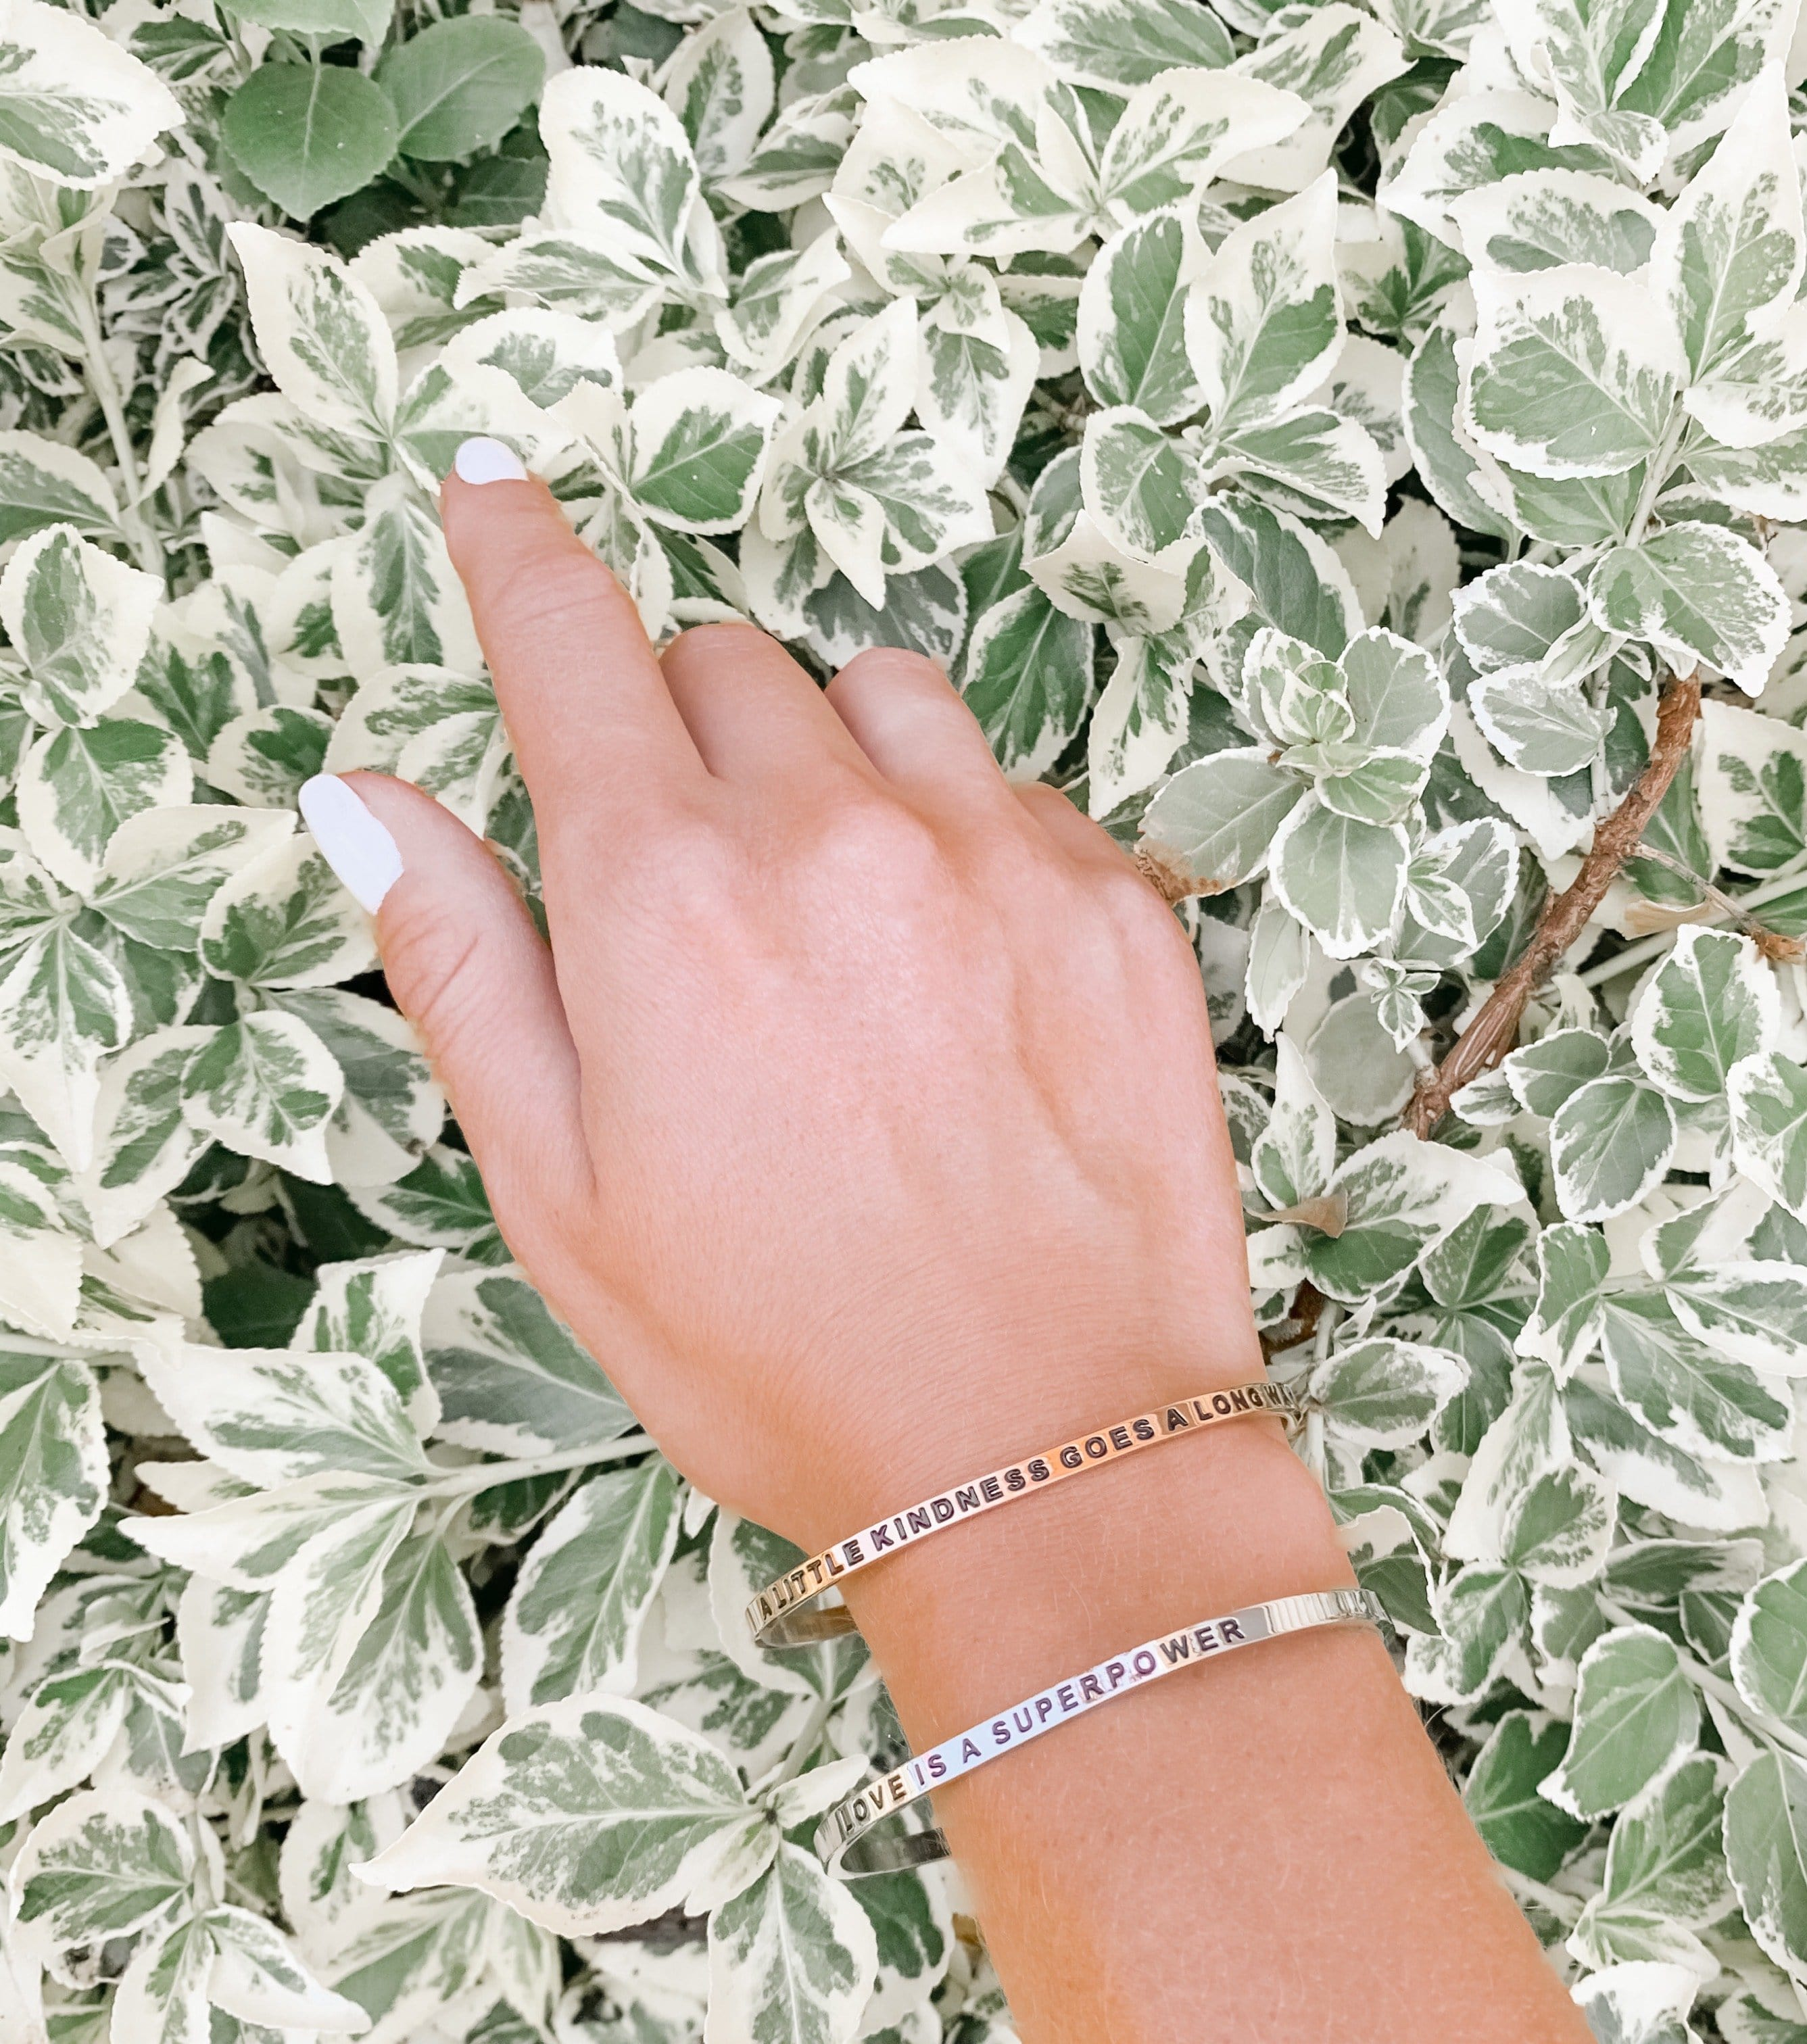 Say What You Feel: Bracelet